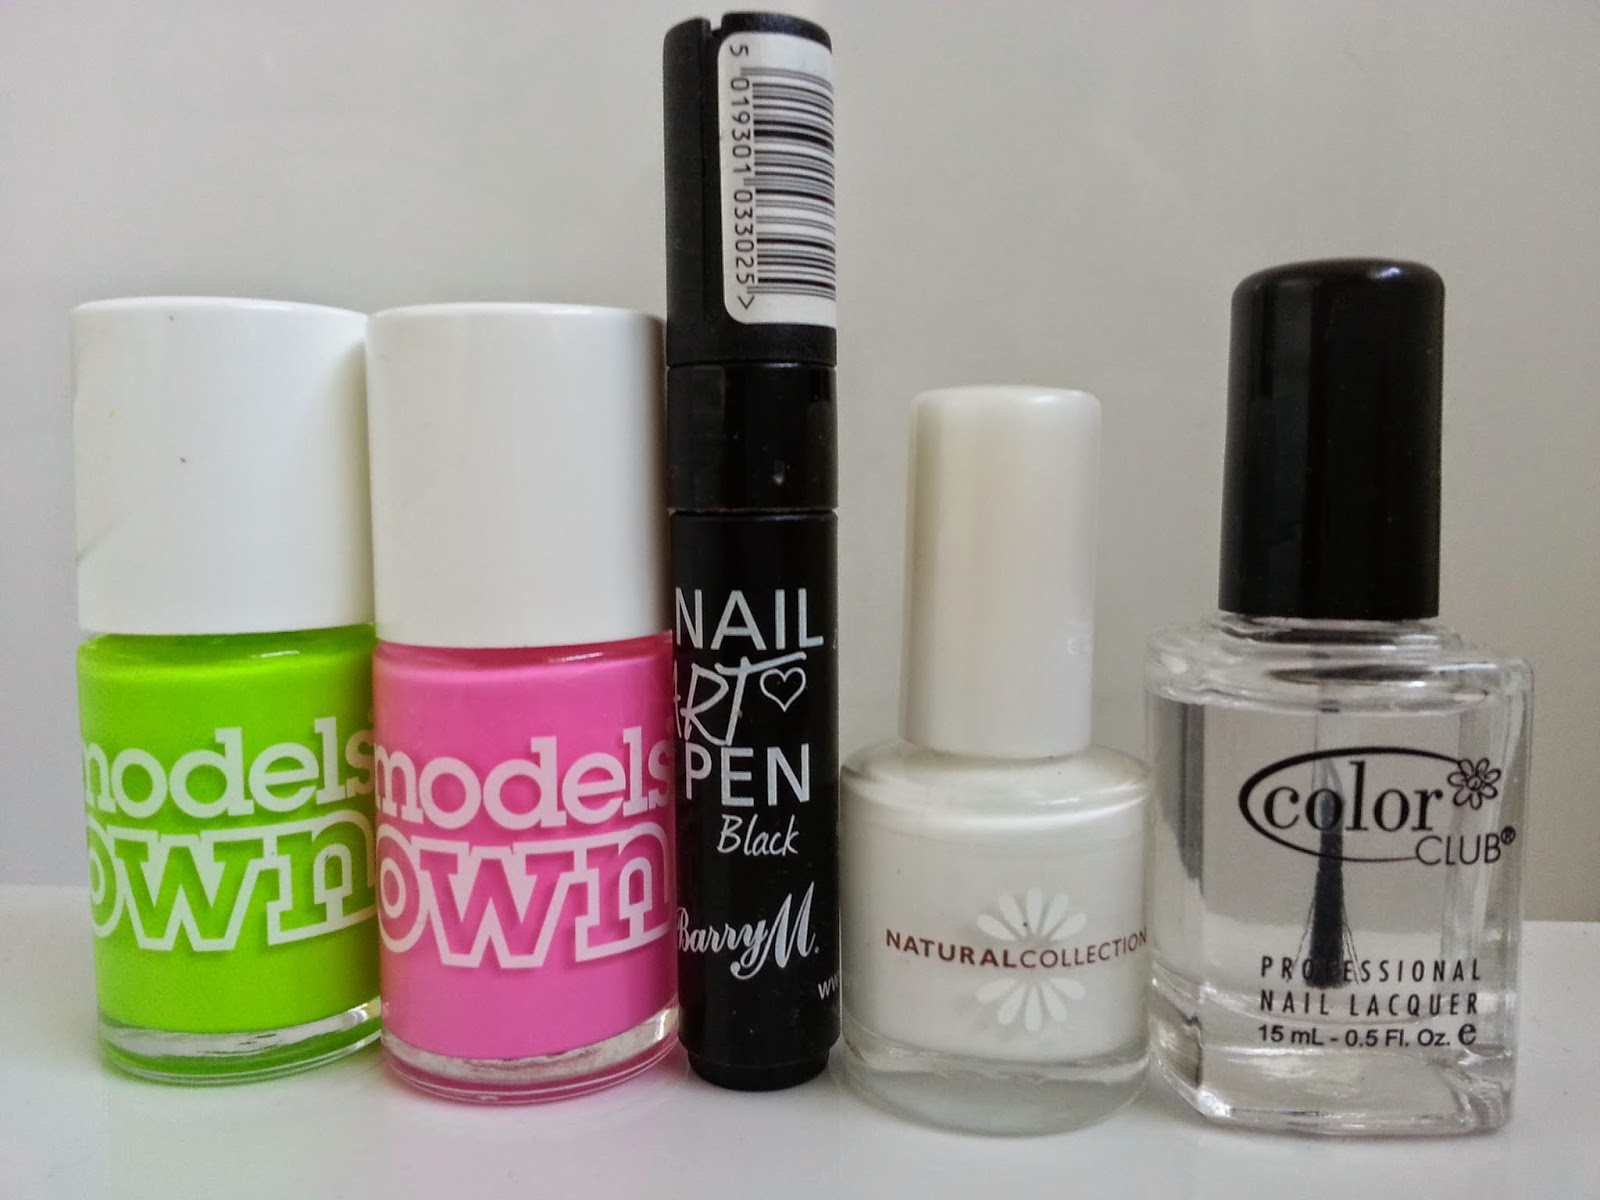 models-own-polish-for-tans-depression-awareness-nail-art